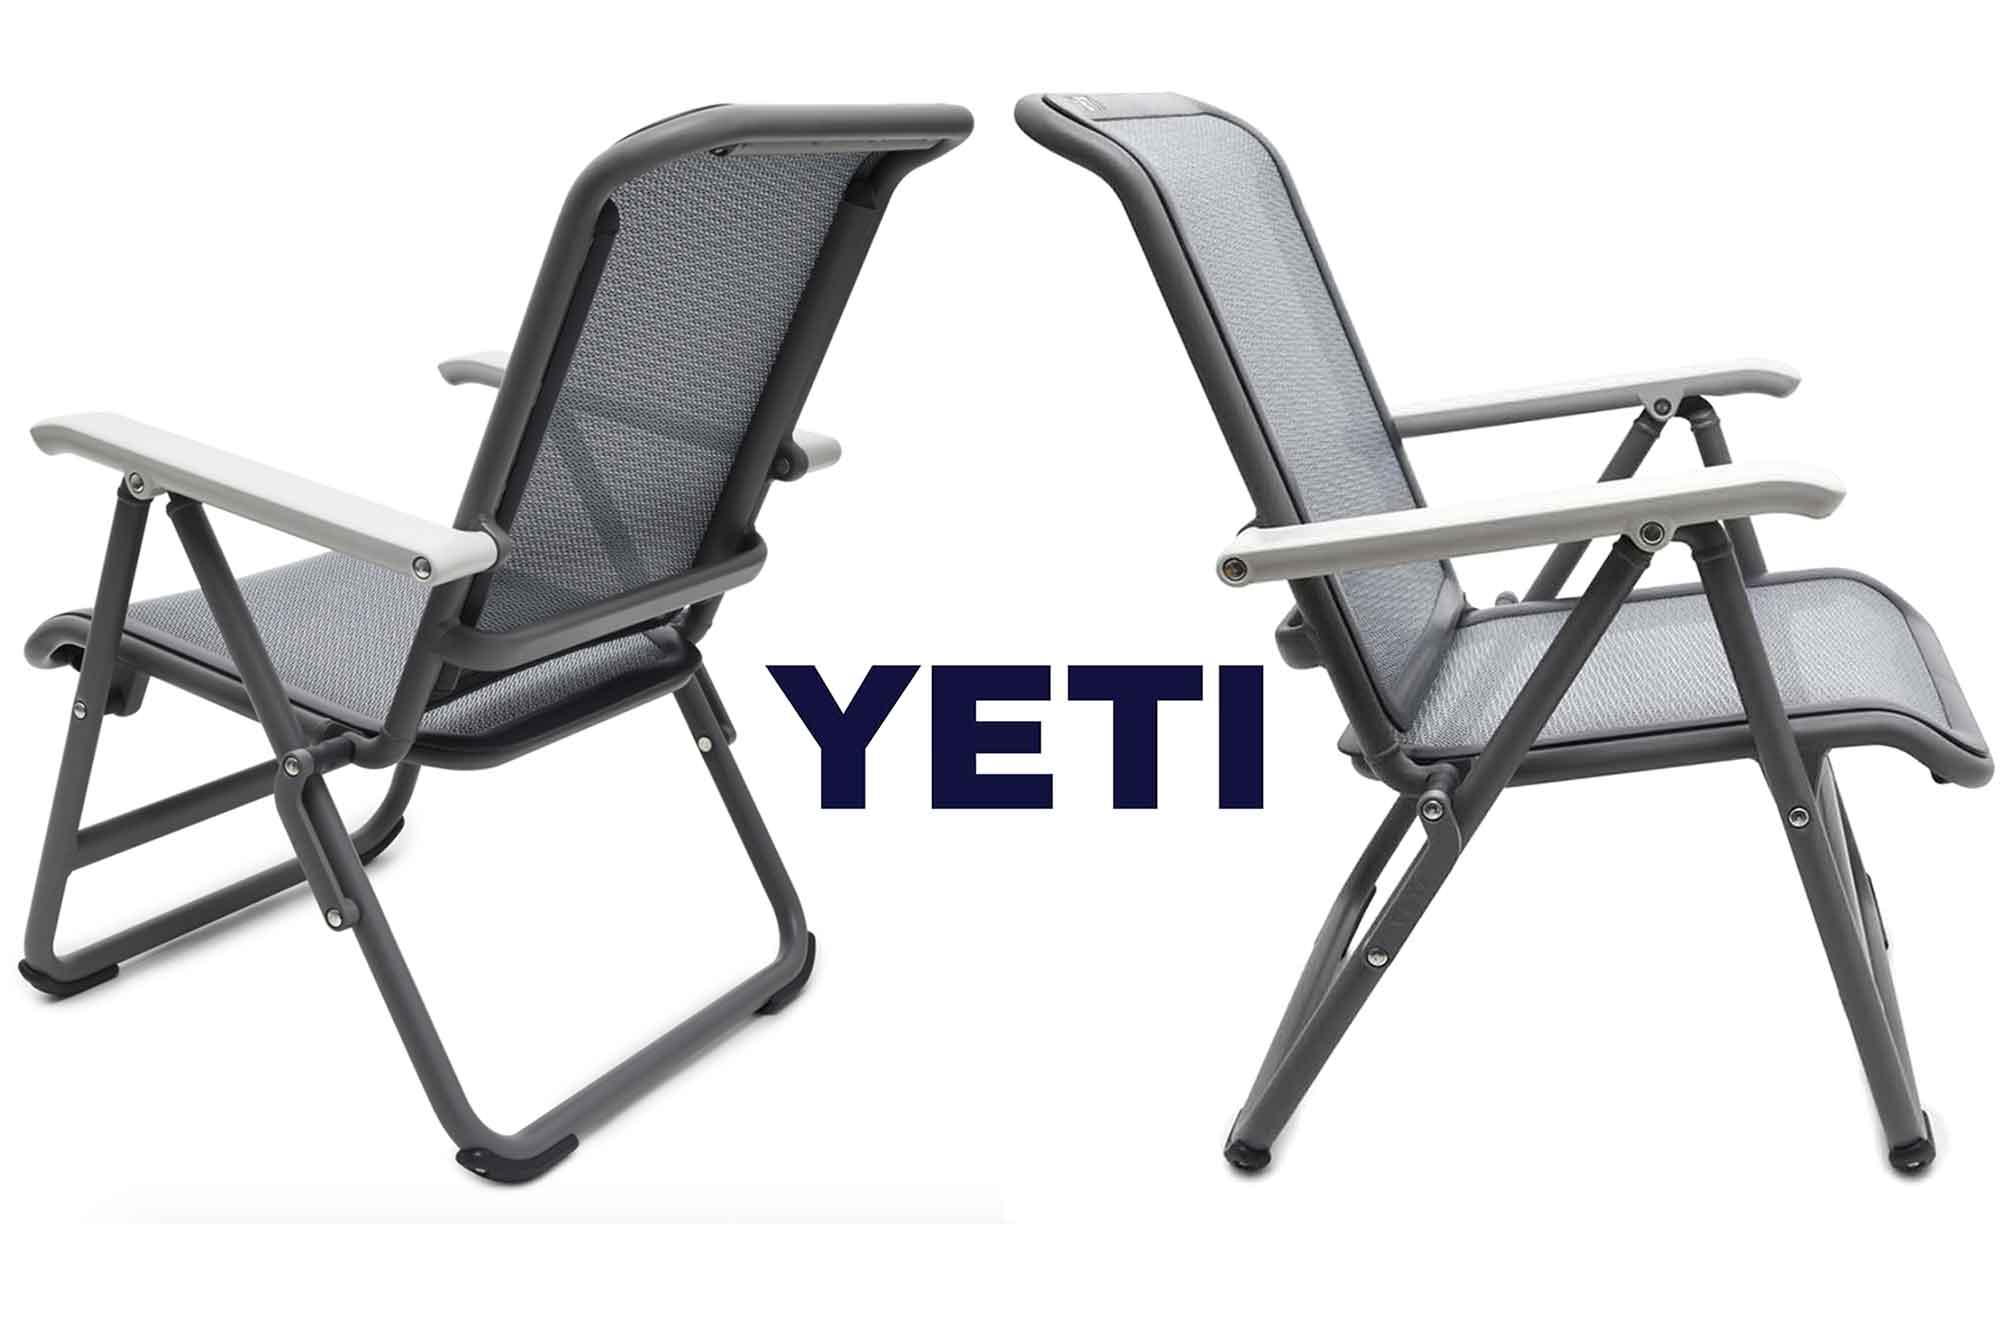 yeti folding chair design usa first look camp cooler backpack gearjunkie